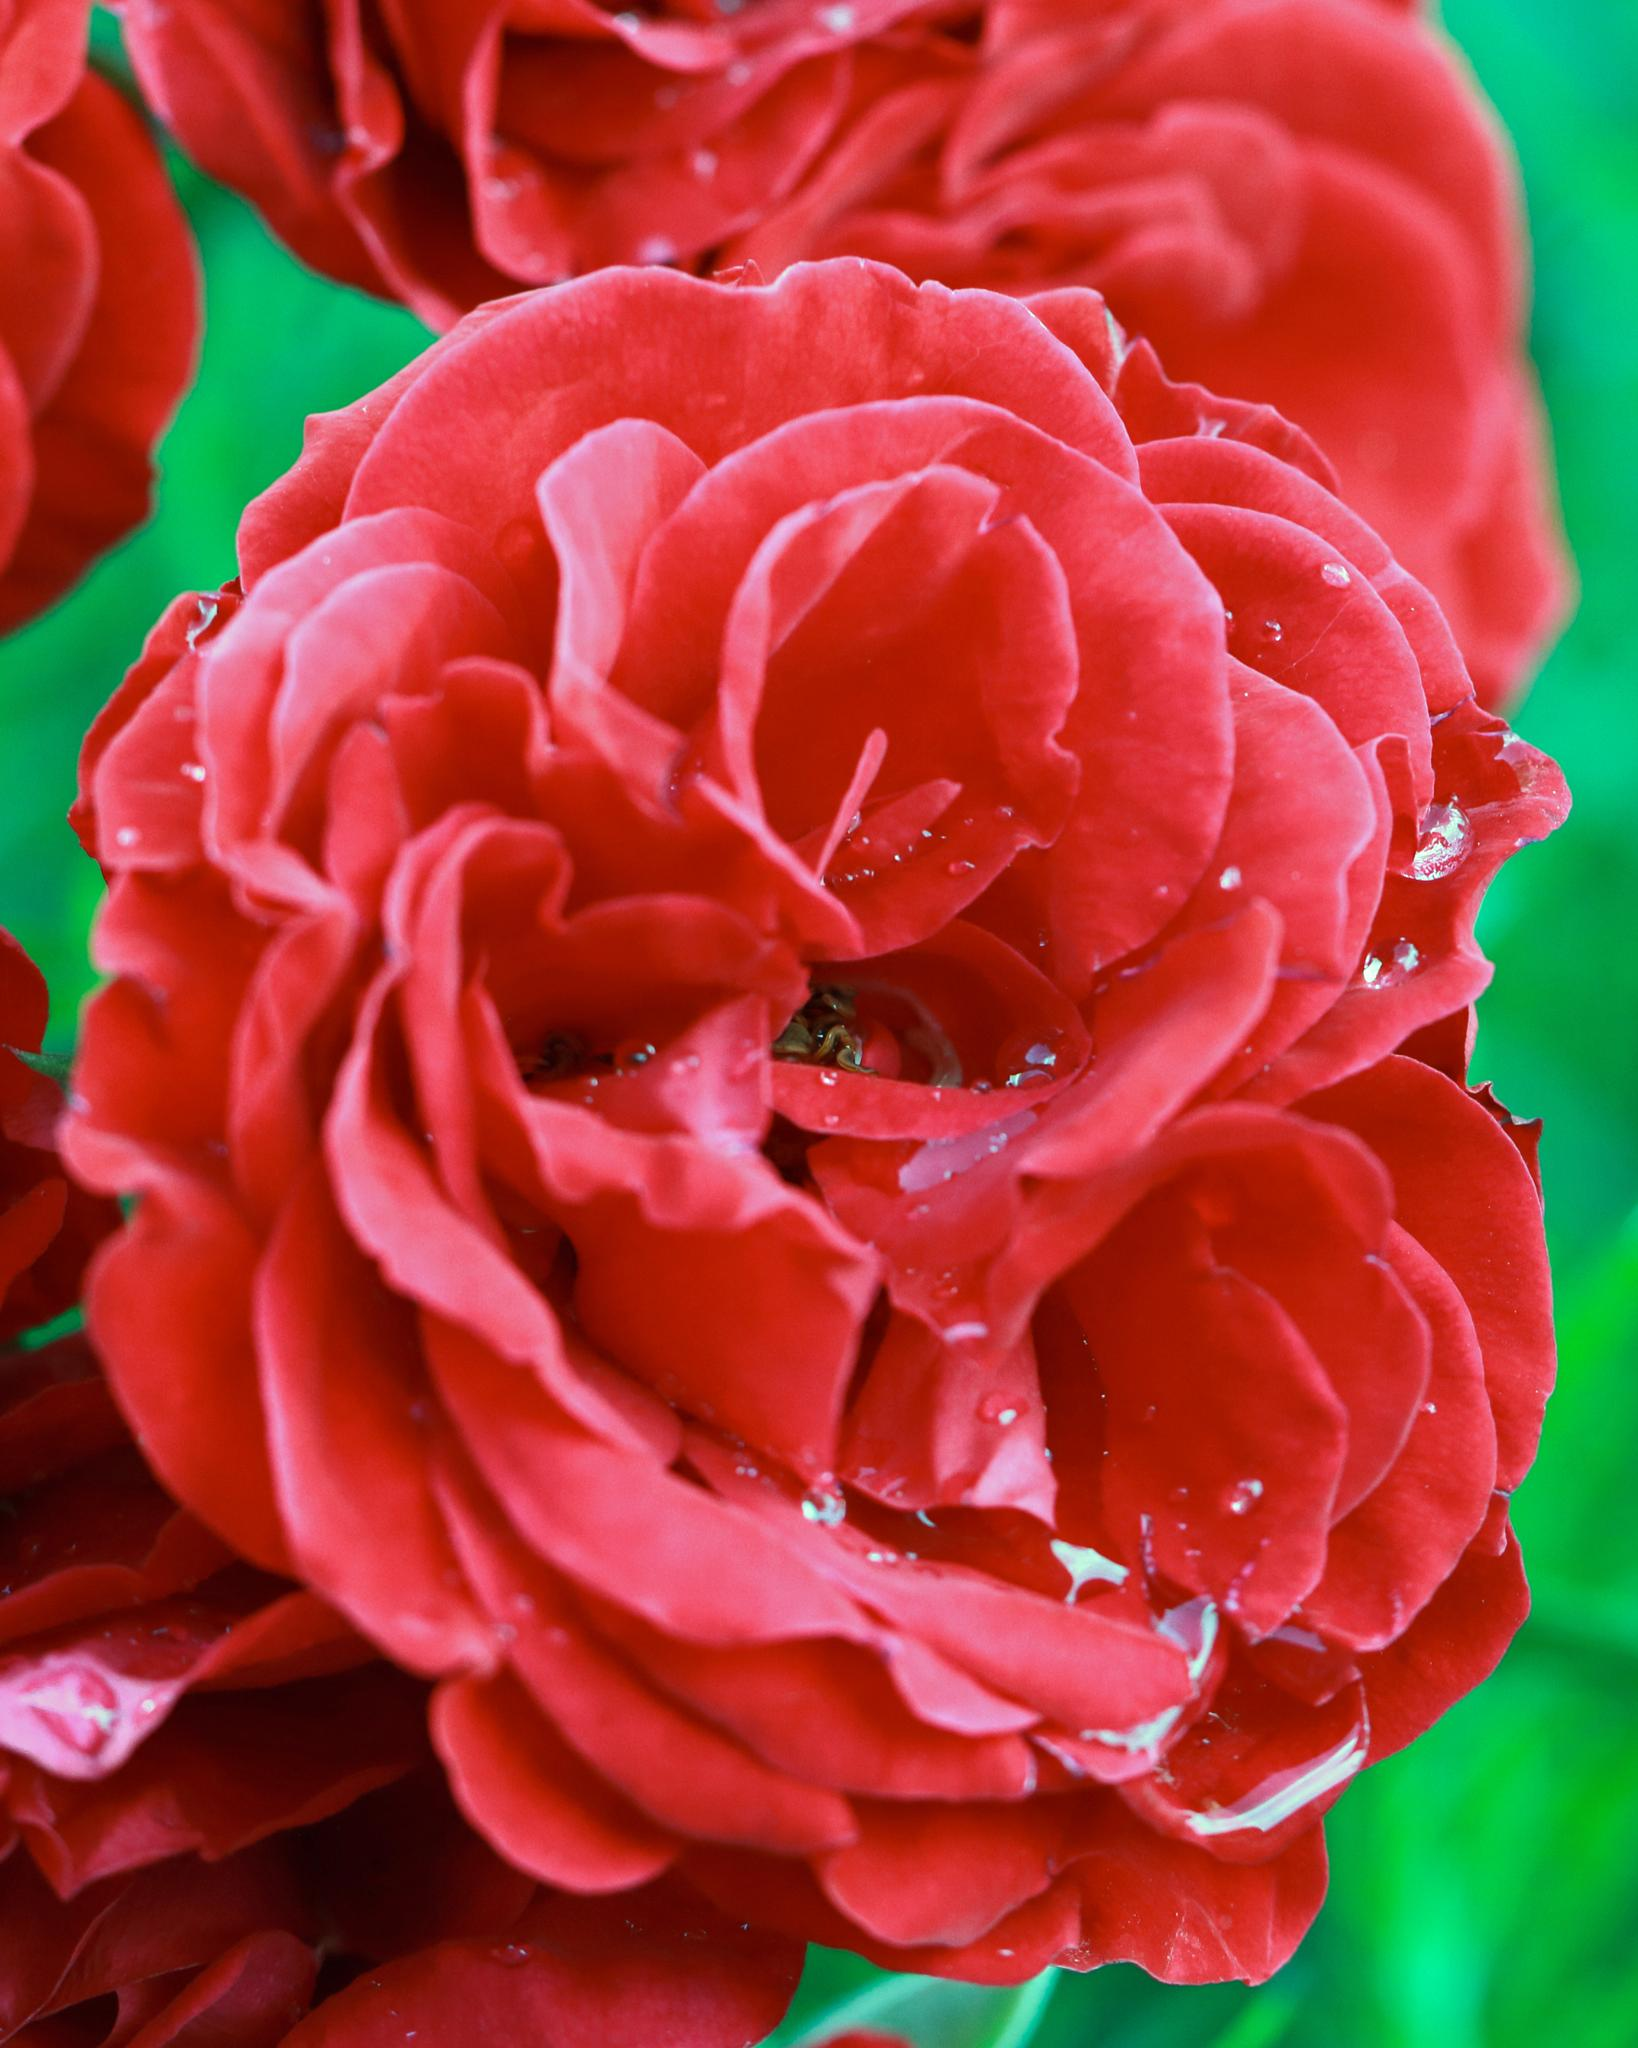 red rose after rainfall by Nicholas Rawsthorne